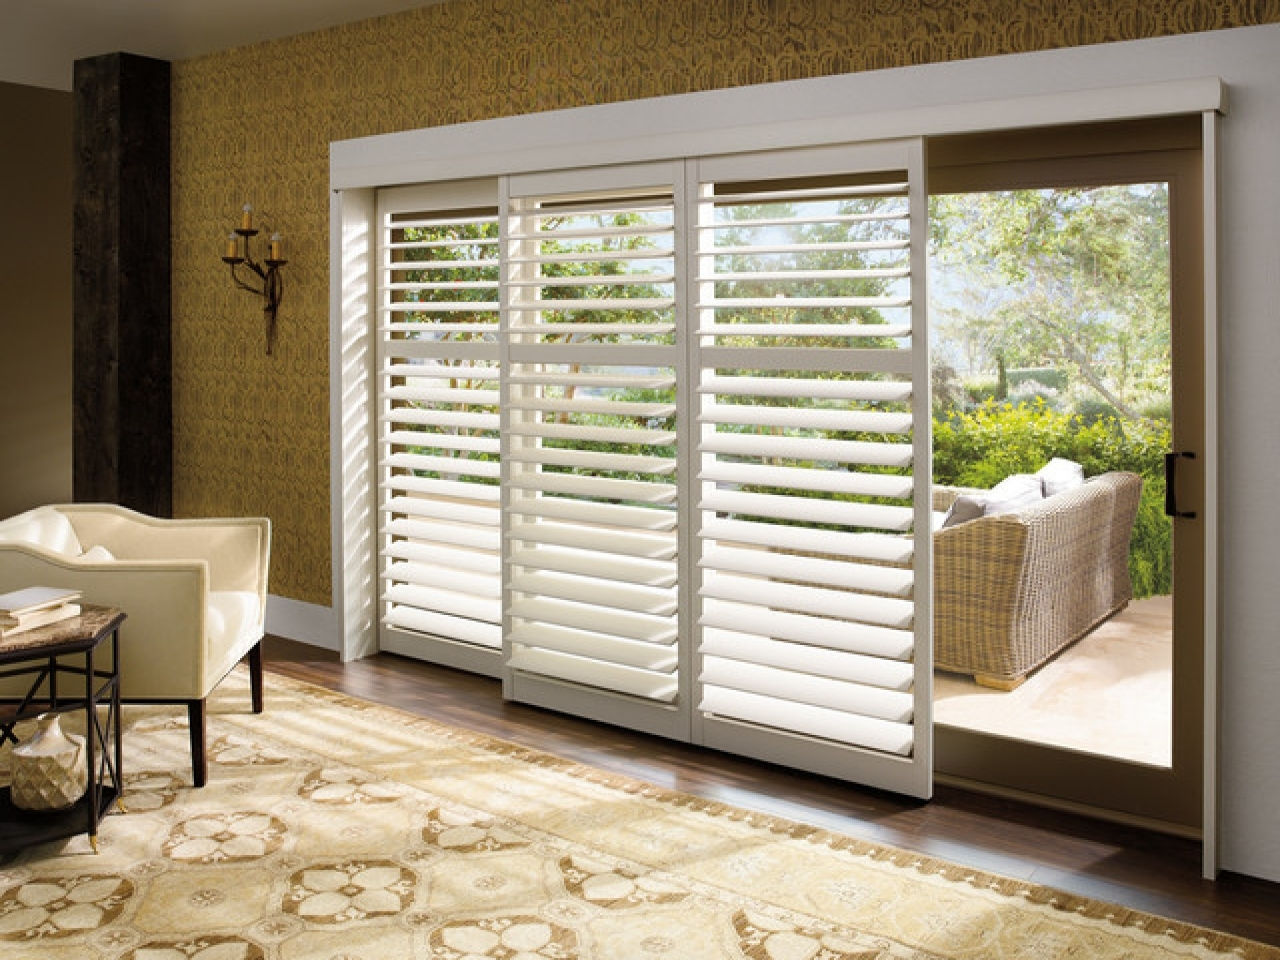 Window Blinds Sliding Patio Doors1280 X 960